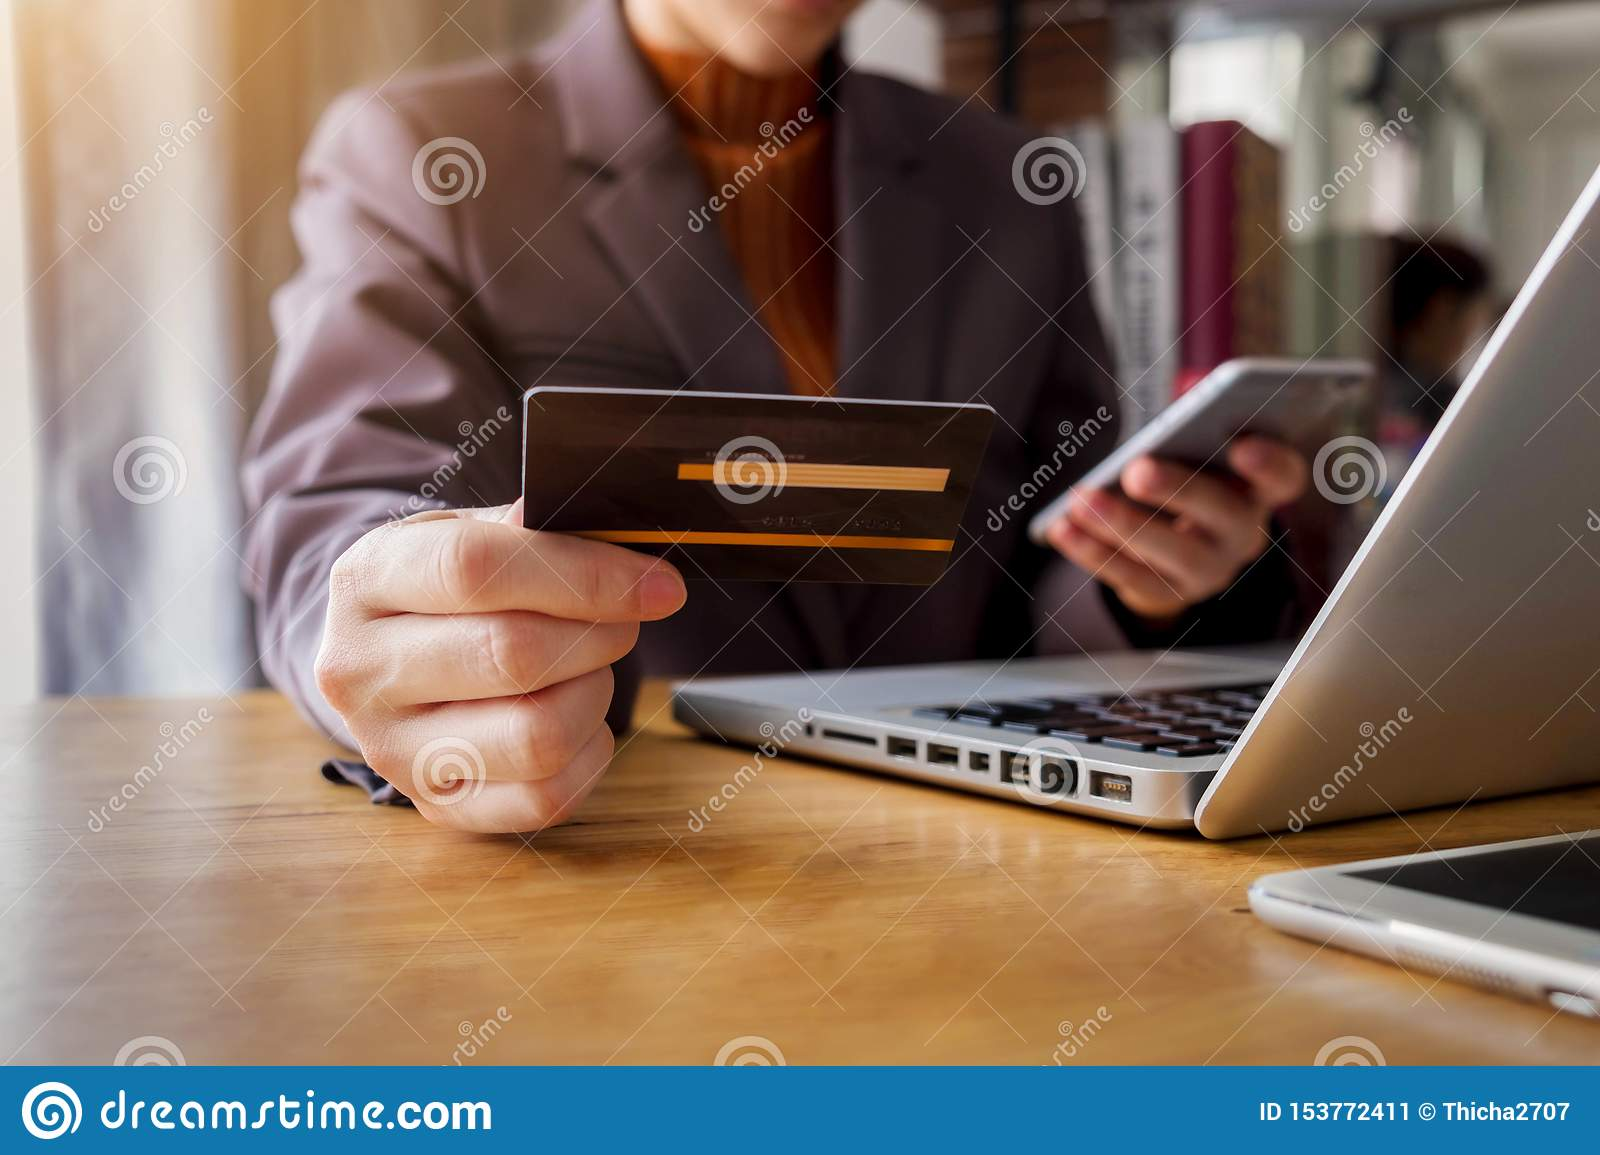 Young woman holding a credit card to purchase on-line shopping.